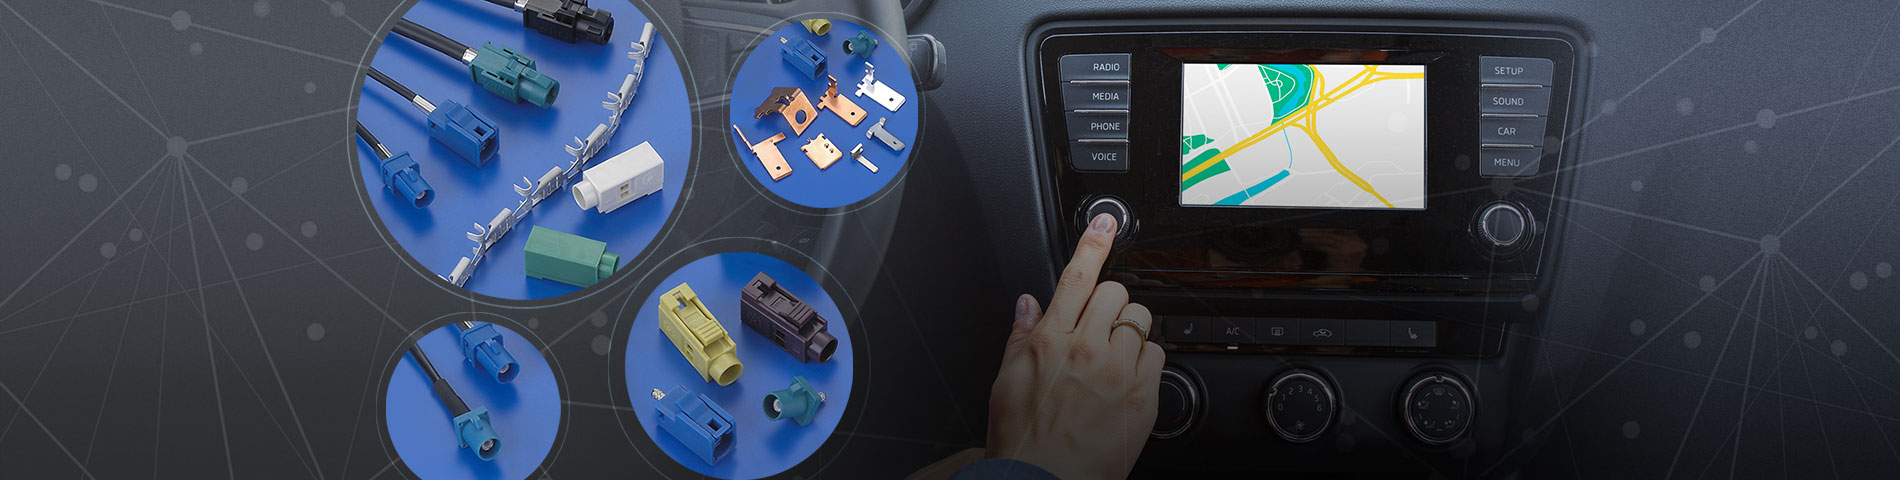 Connecteur automobile    APPLICATION